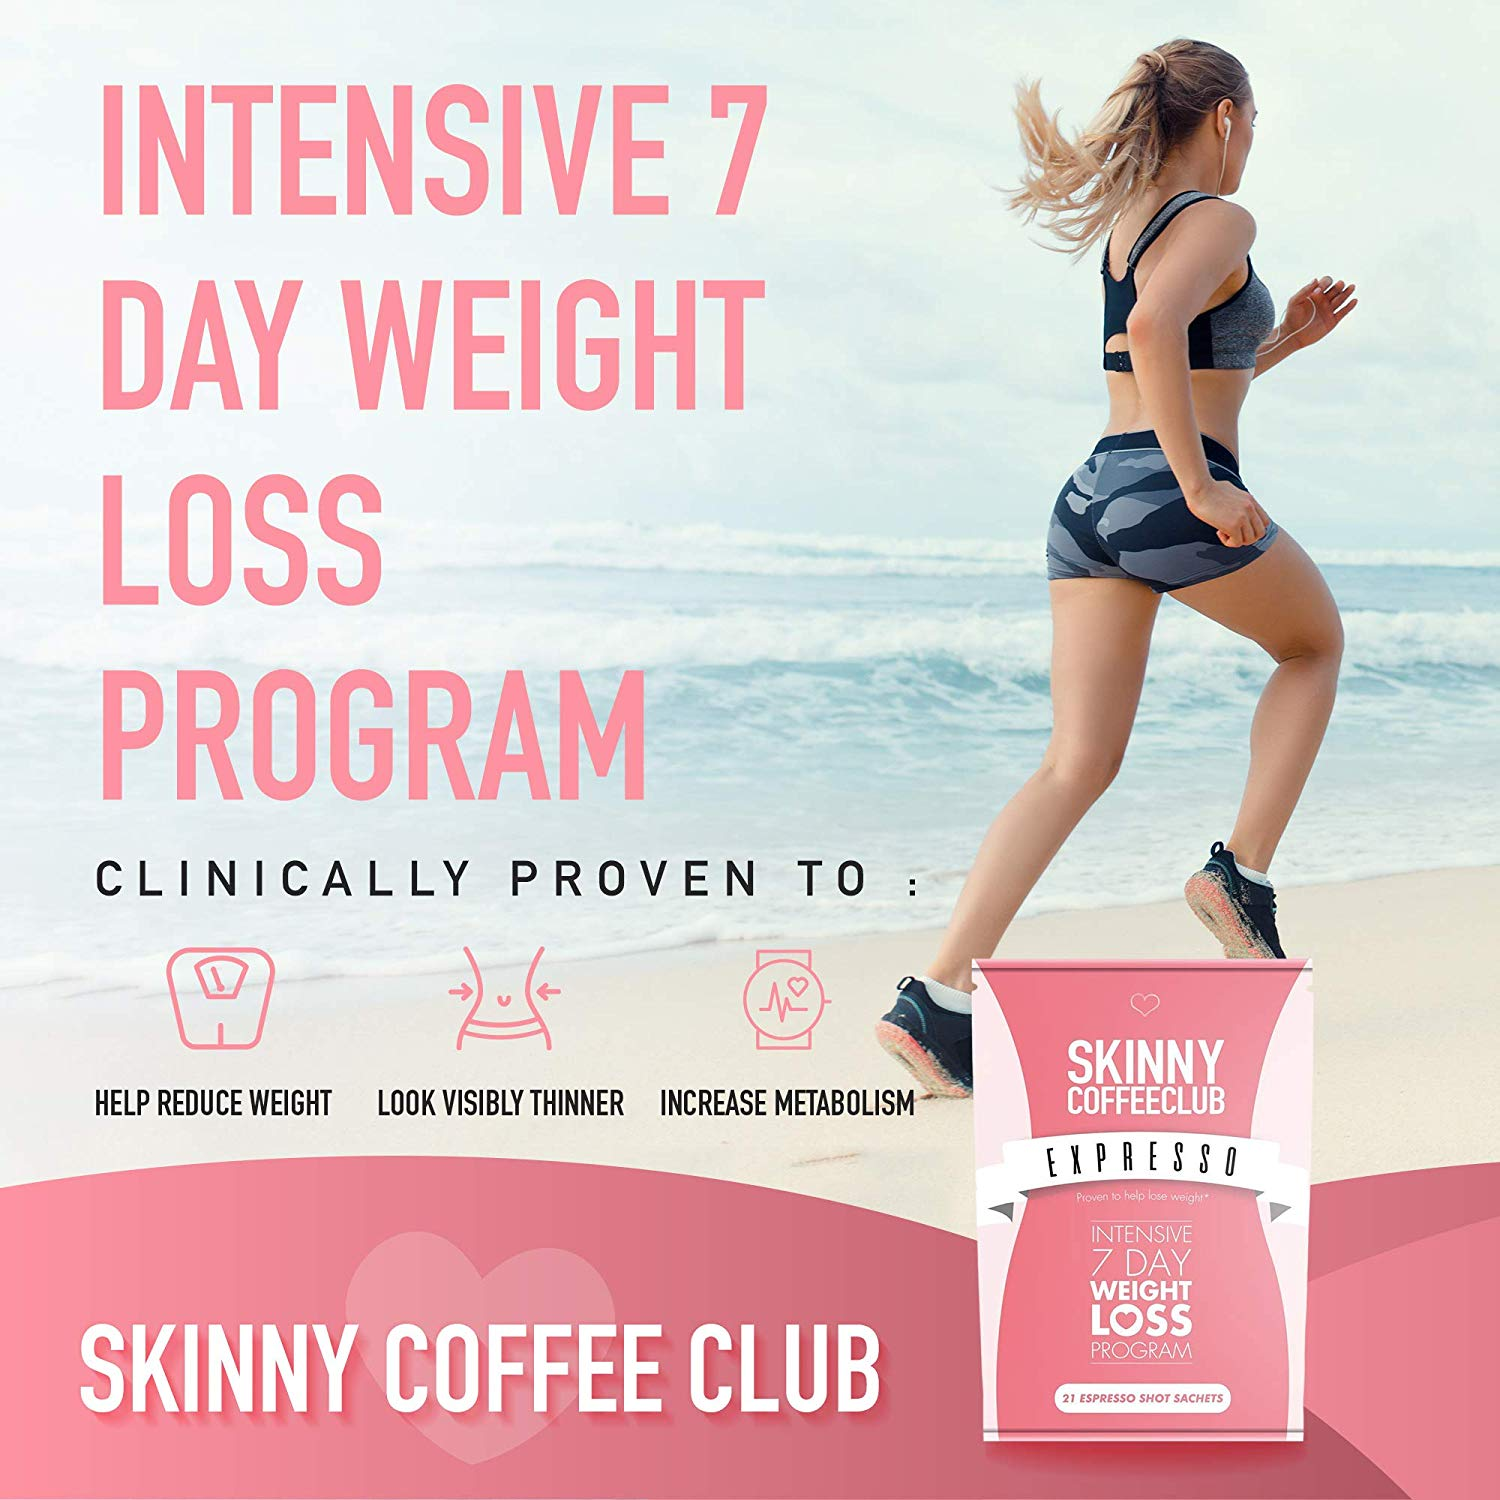 Intensive 7 Day Weight Loss Program